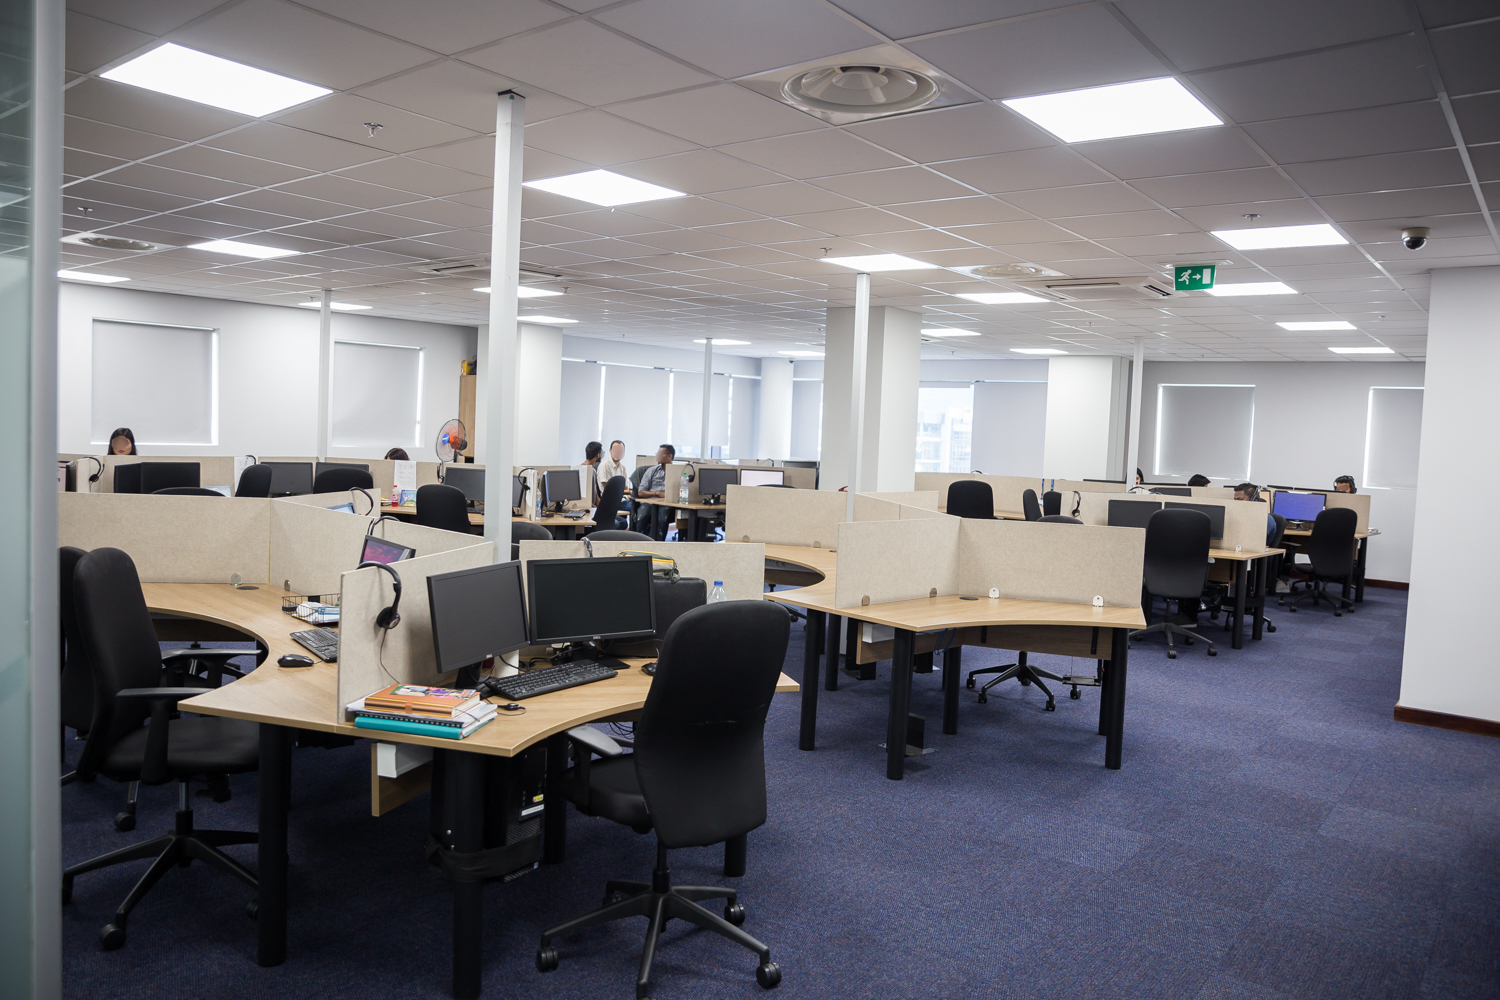 Office Space for sale - Standard Chartered Building